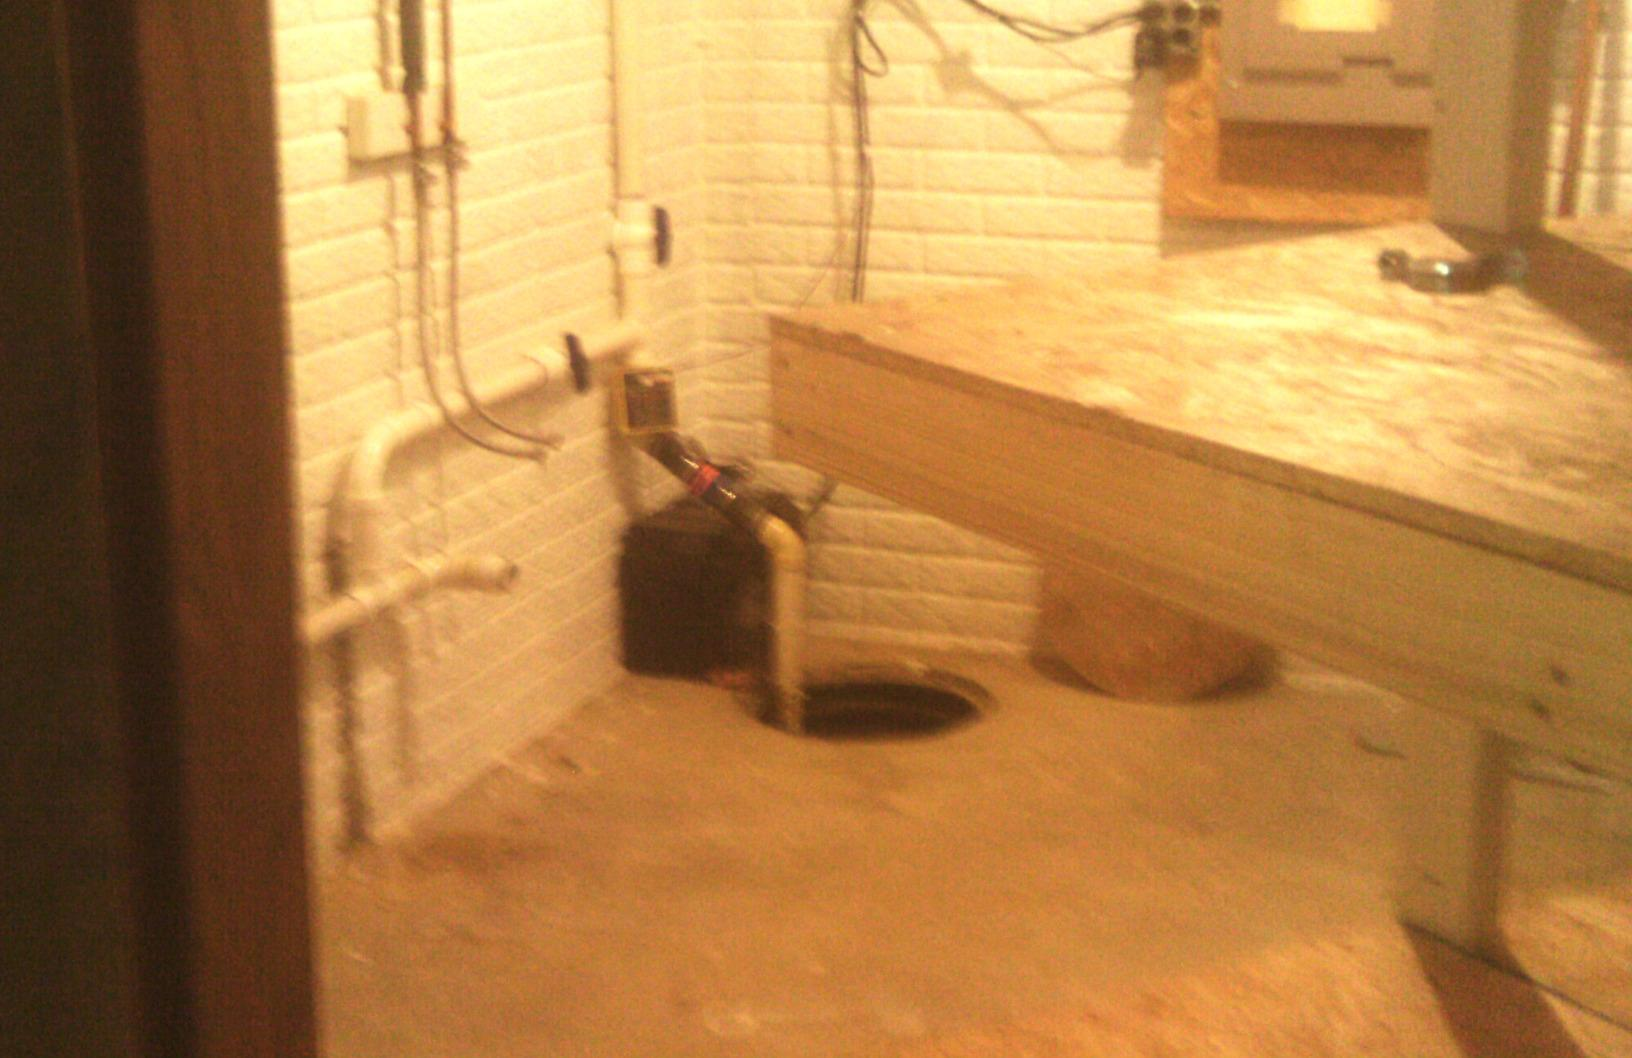 The previous sump pump was open, among other flaws, which allowed water vapor to rise into the basement